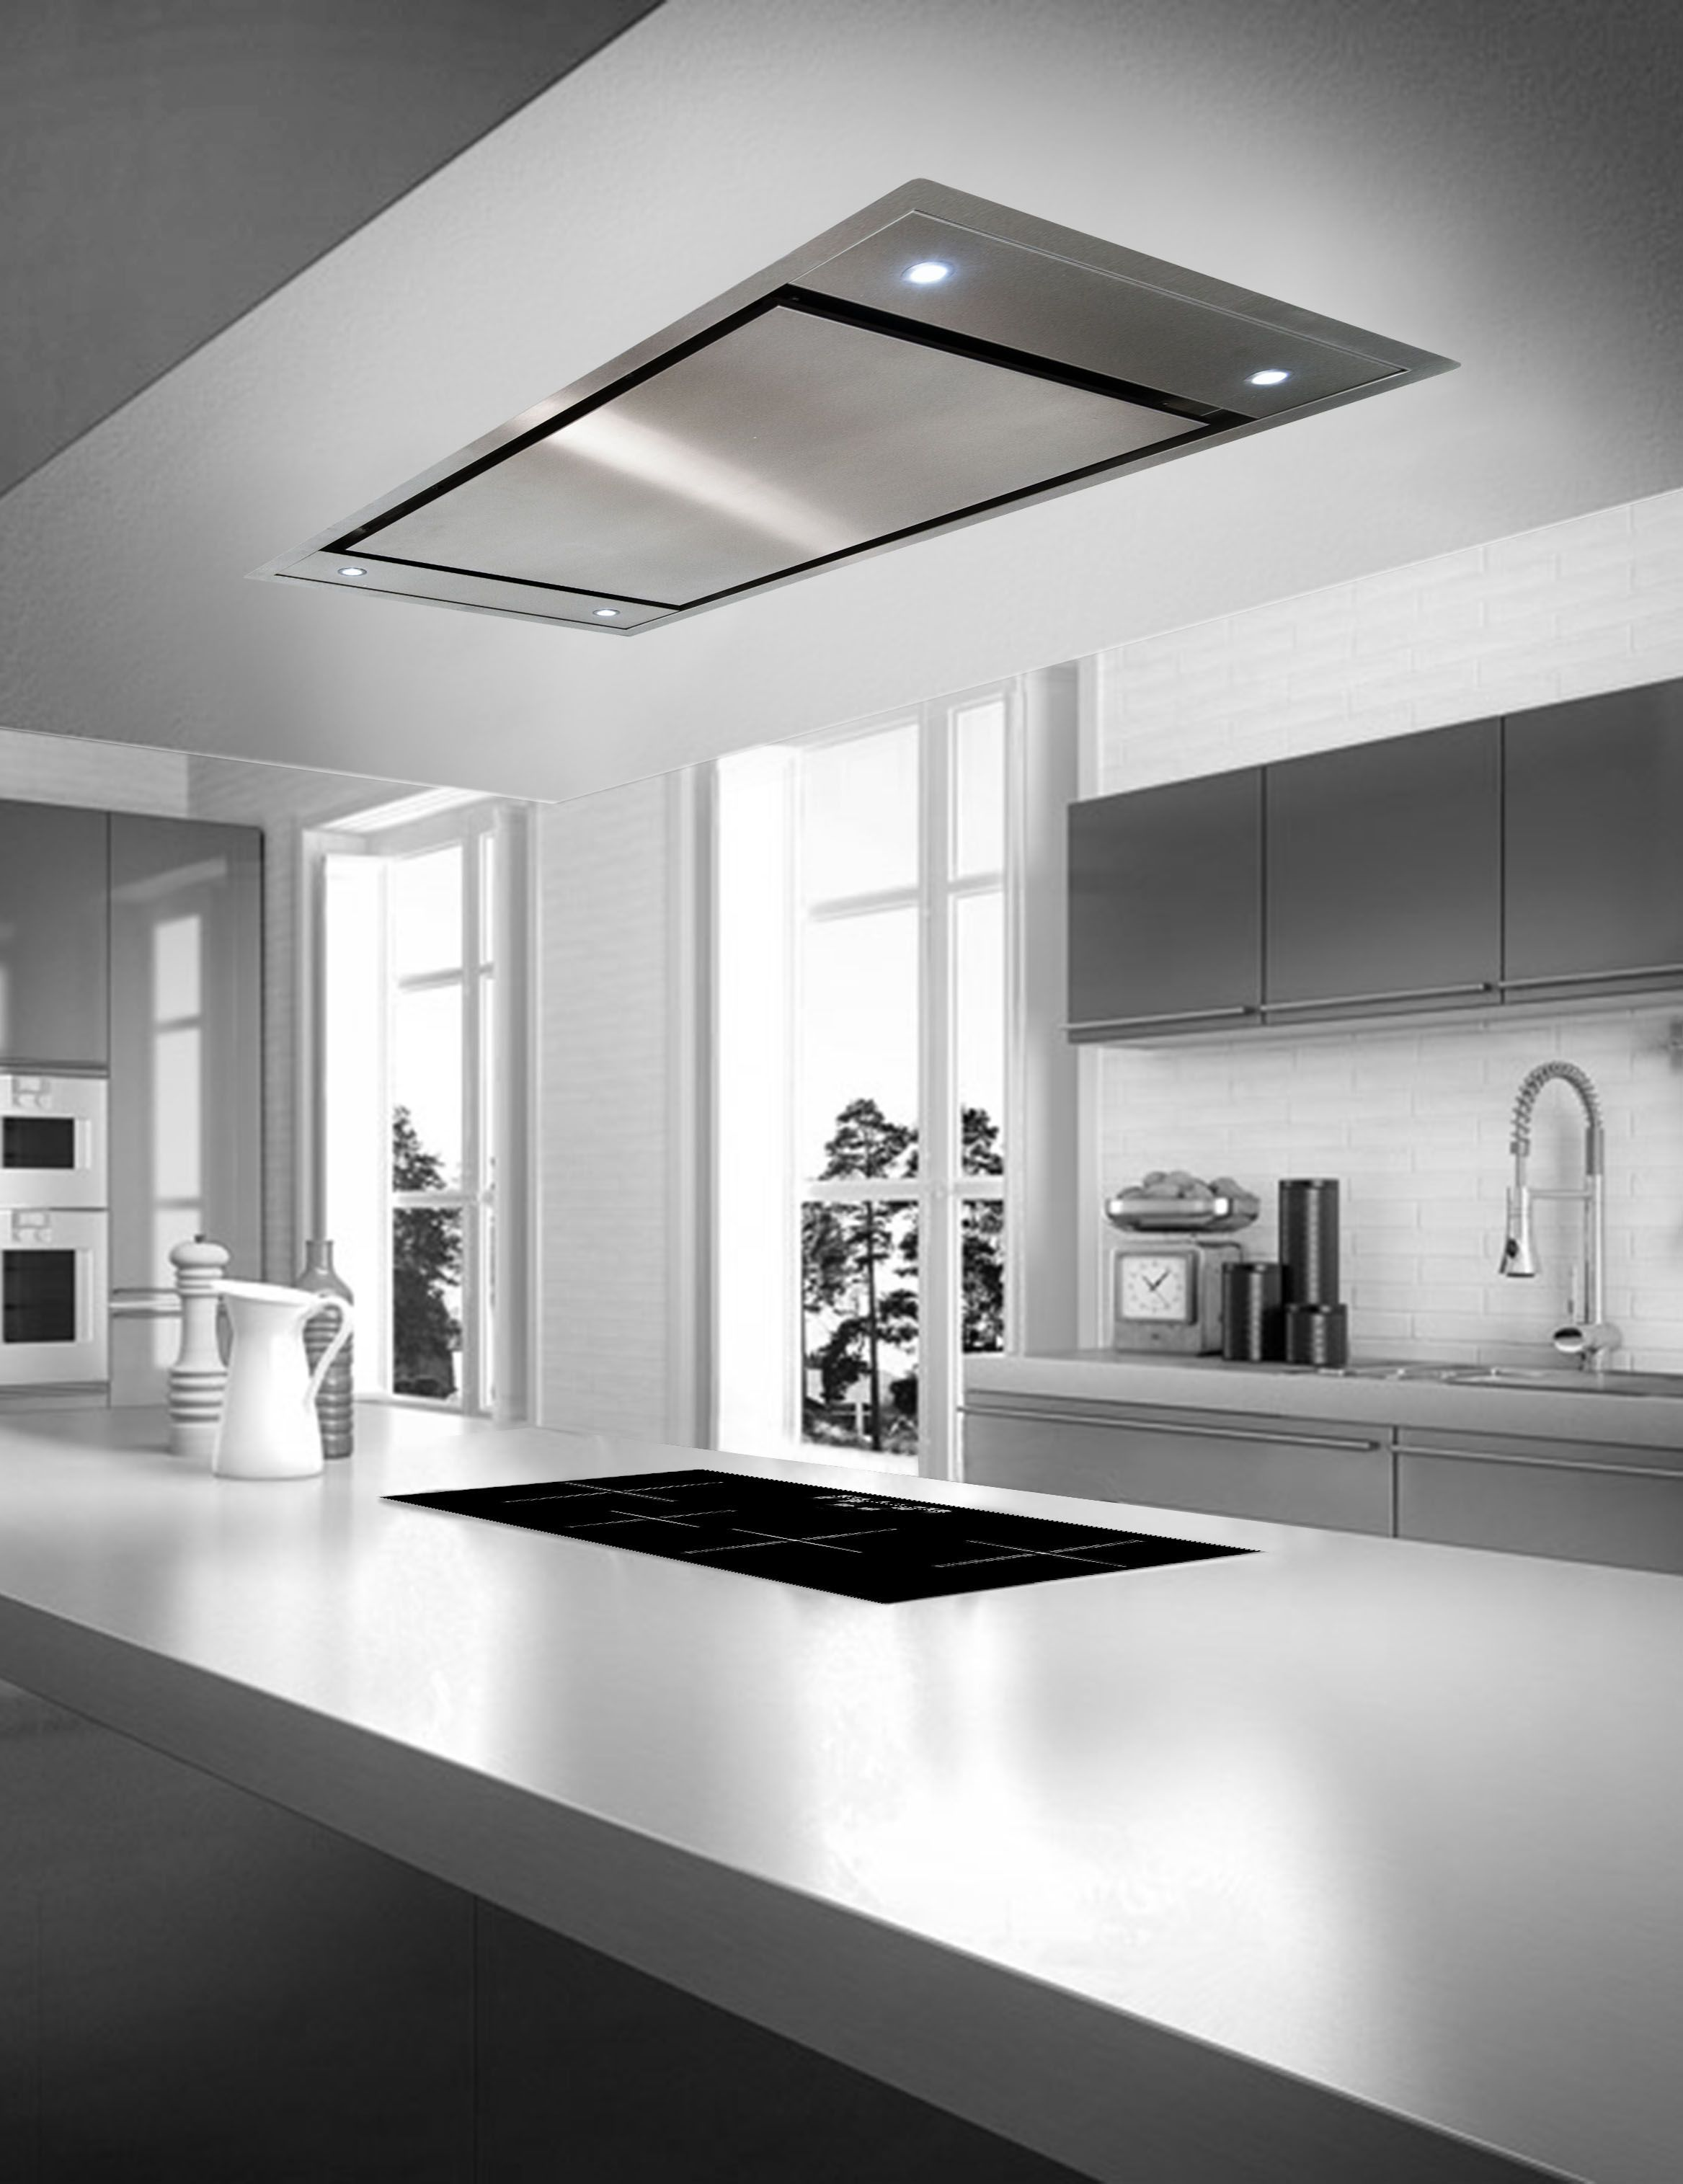 zefiro ce120 flush mount island ceiling hoods kitchen rh pinterest com Kitchen Ceiling Exhaust Fans Kitchen Island Ceiling Ventilation